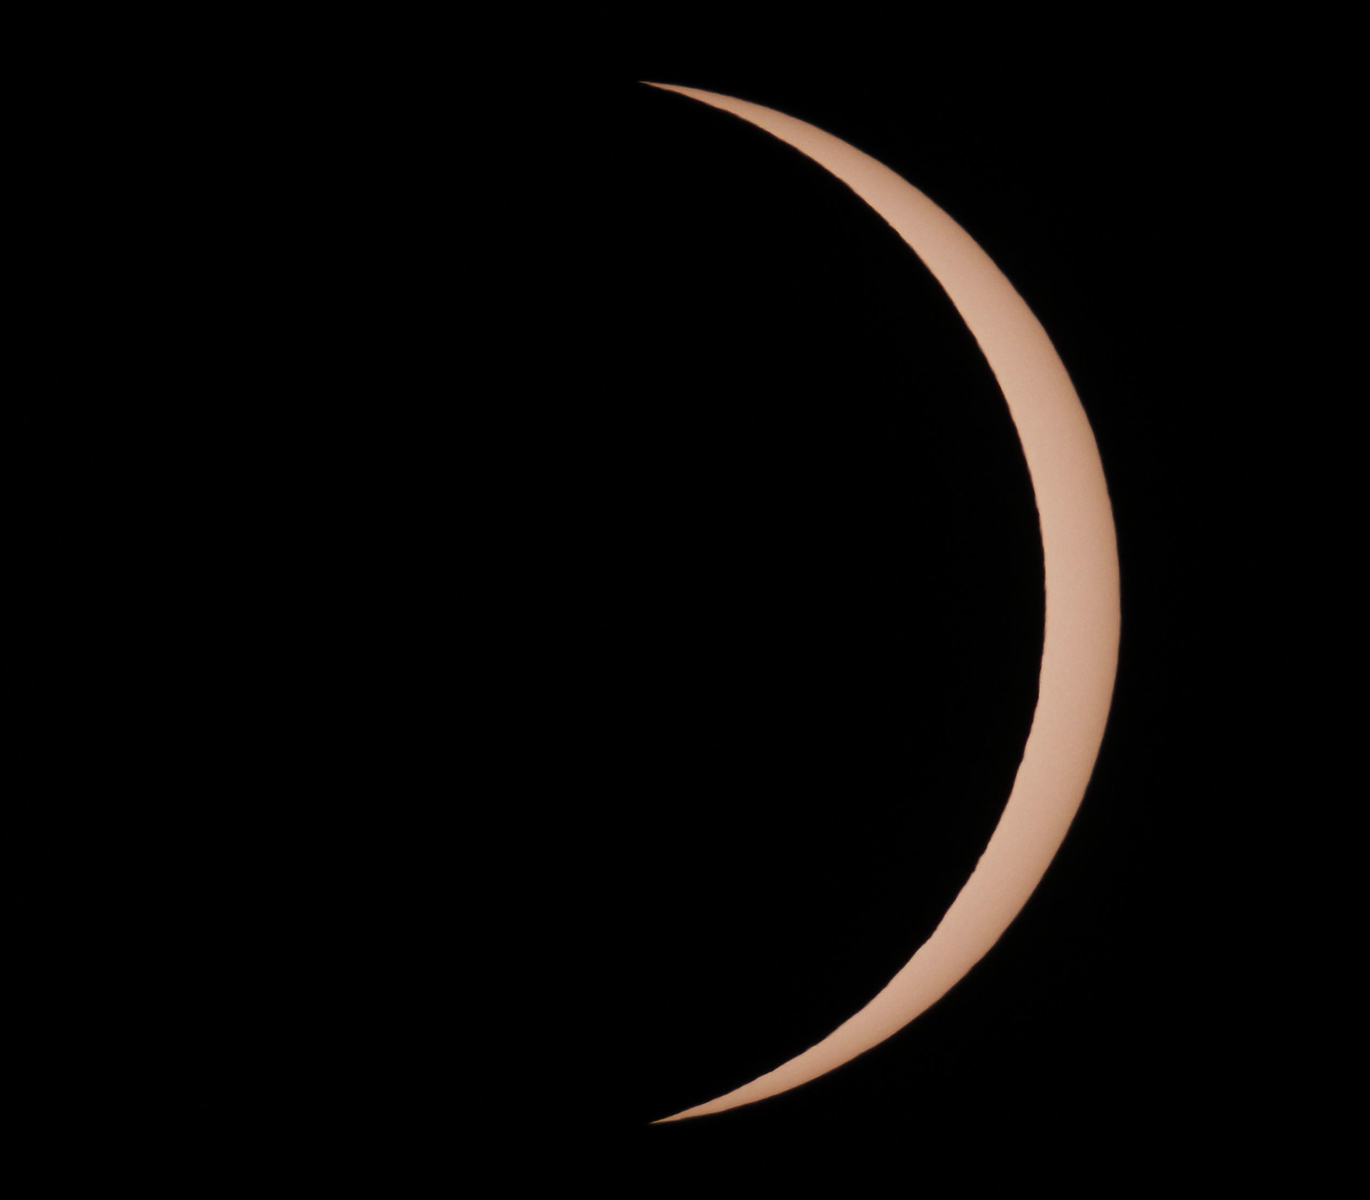 Maximum coverage of the 21 August 2017 Eclipse